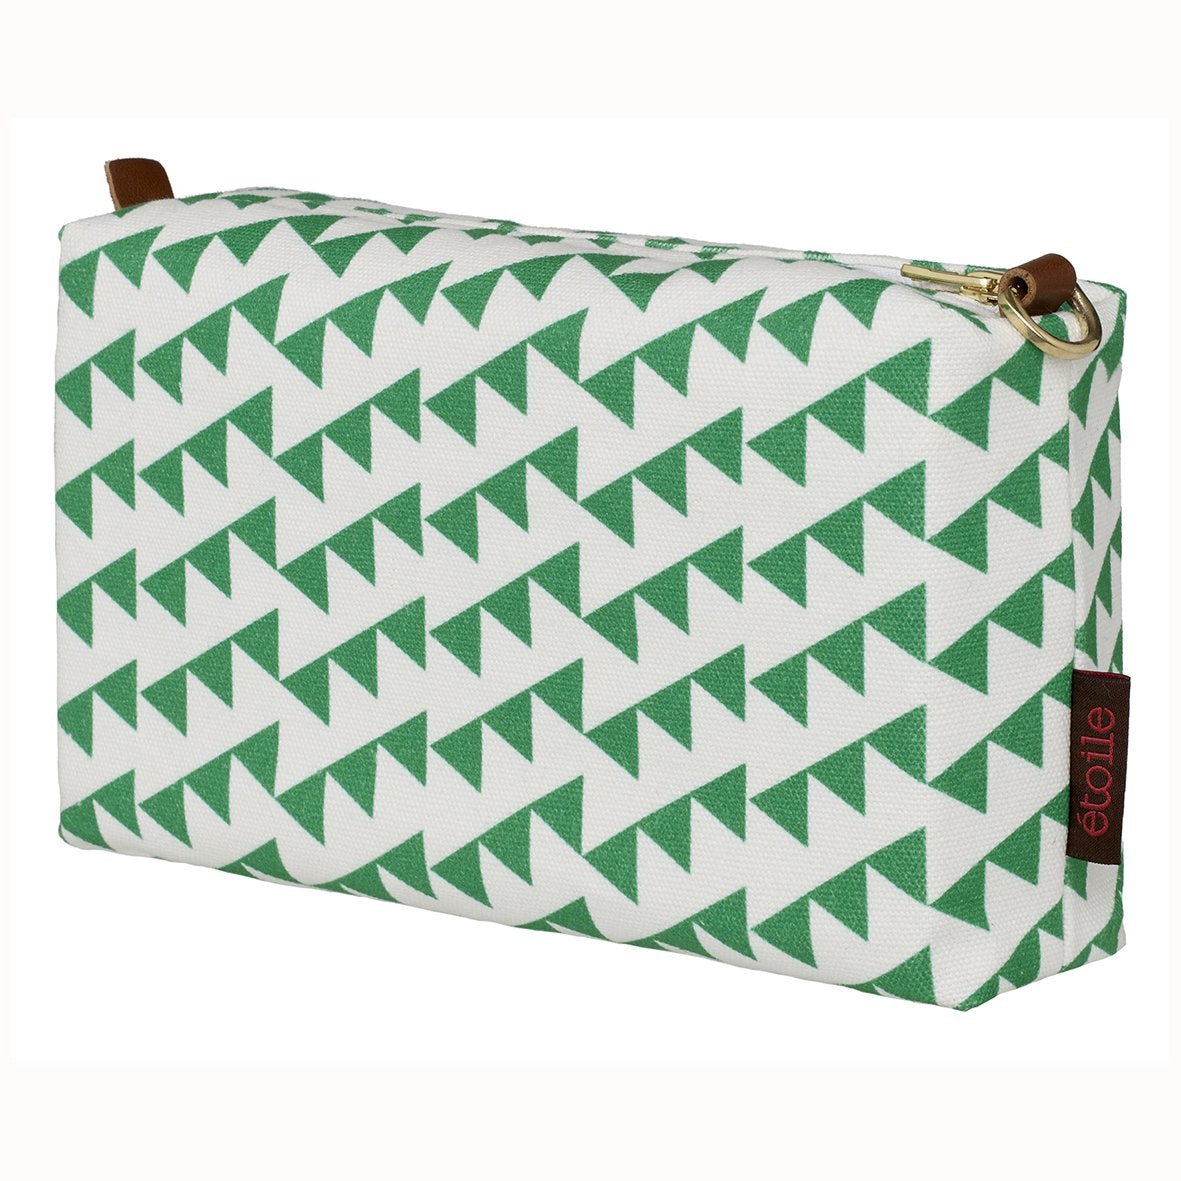 Bunting Geometric Pattern Canvas Wash toiletry travel Bag Bright Emerald Green cosmetic Bag canada (USA)